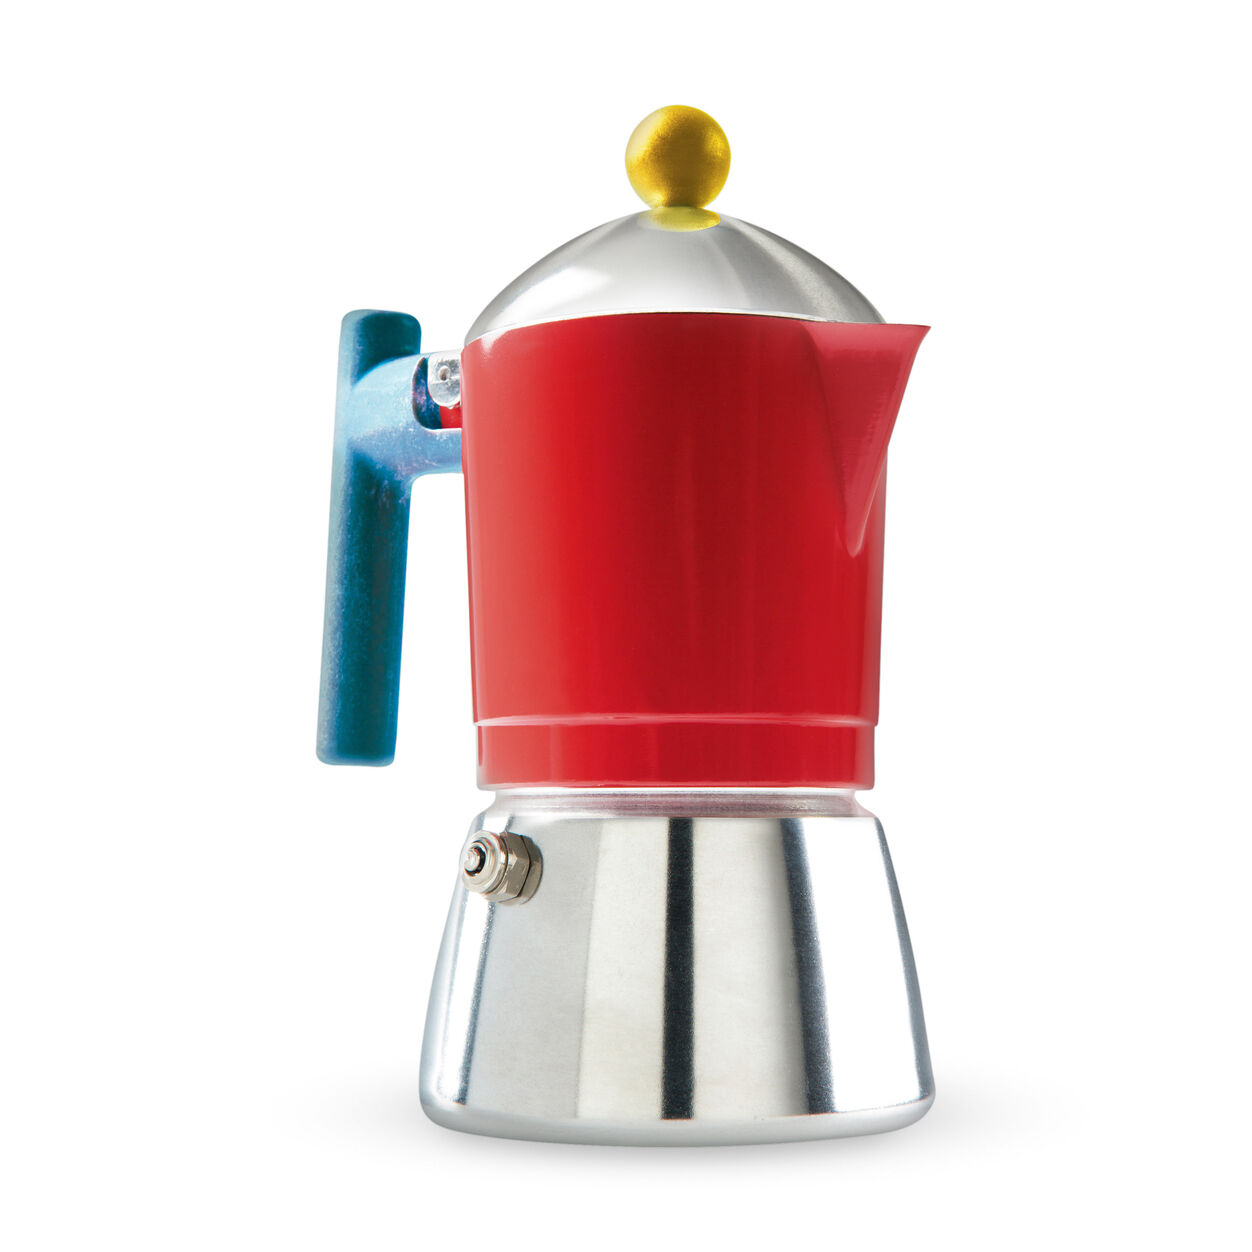 Gourmet hostess gifts under $50: Cocca Moka Espresso pot from the MoMA design store